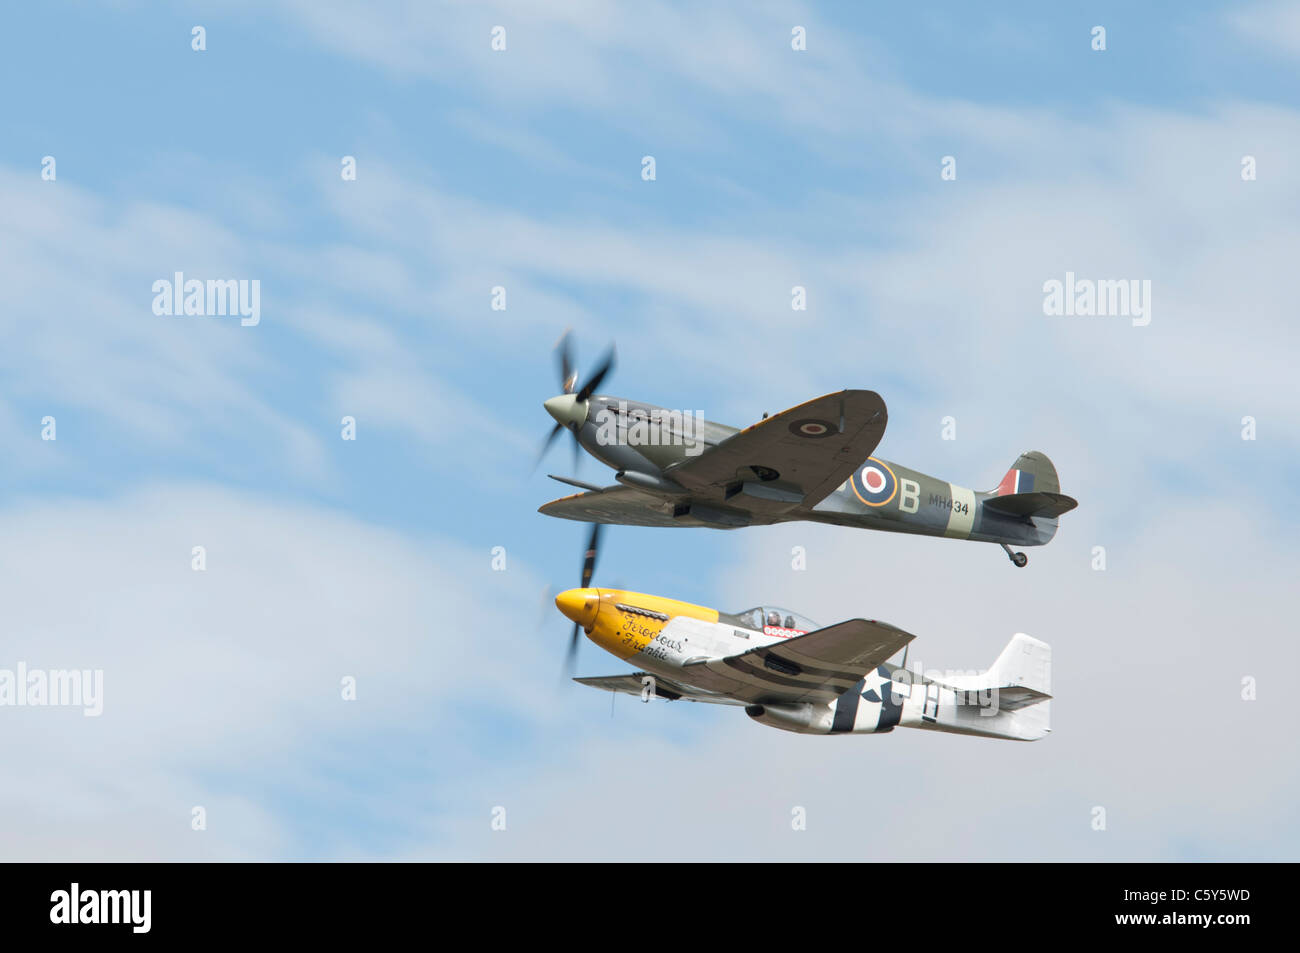 British Supermarine Spitfire Mark IXB number MH434 ( built in 1943) and North American P-51D Mustang ' Ferocious Stock Photo